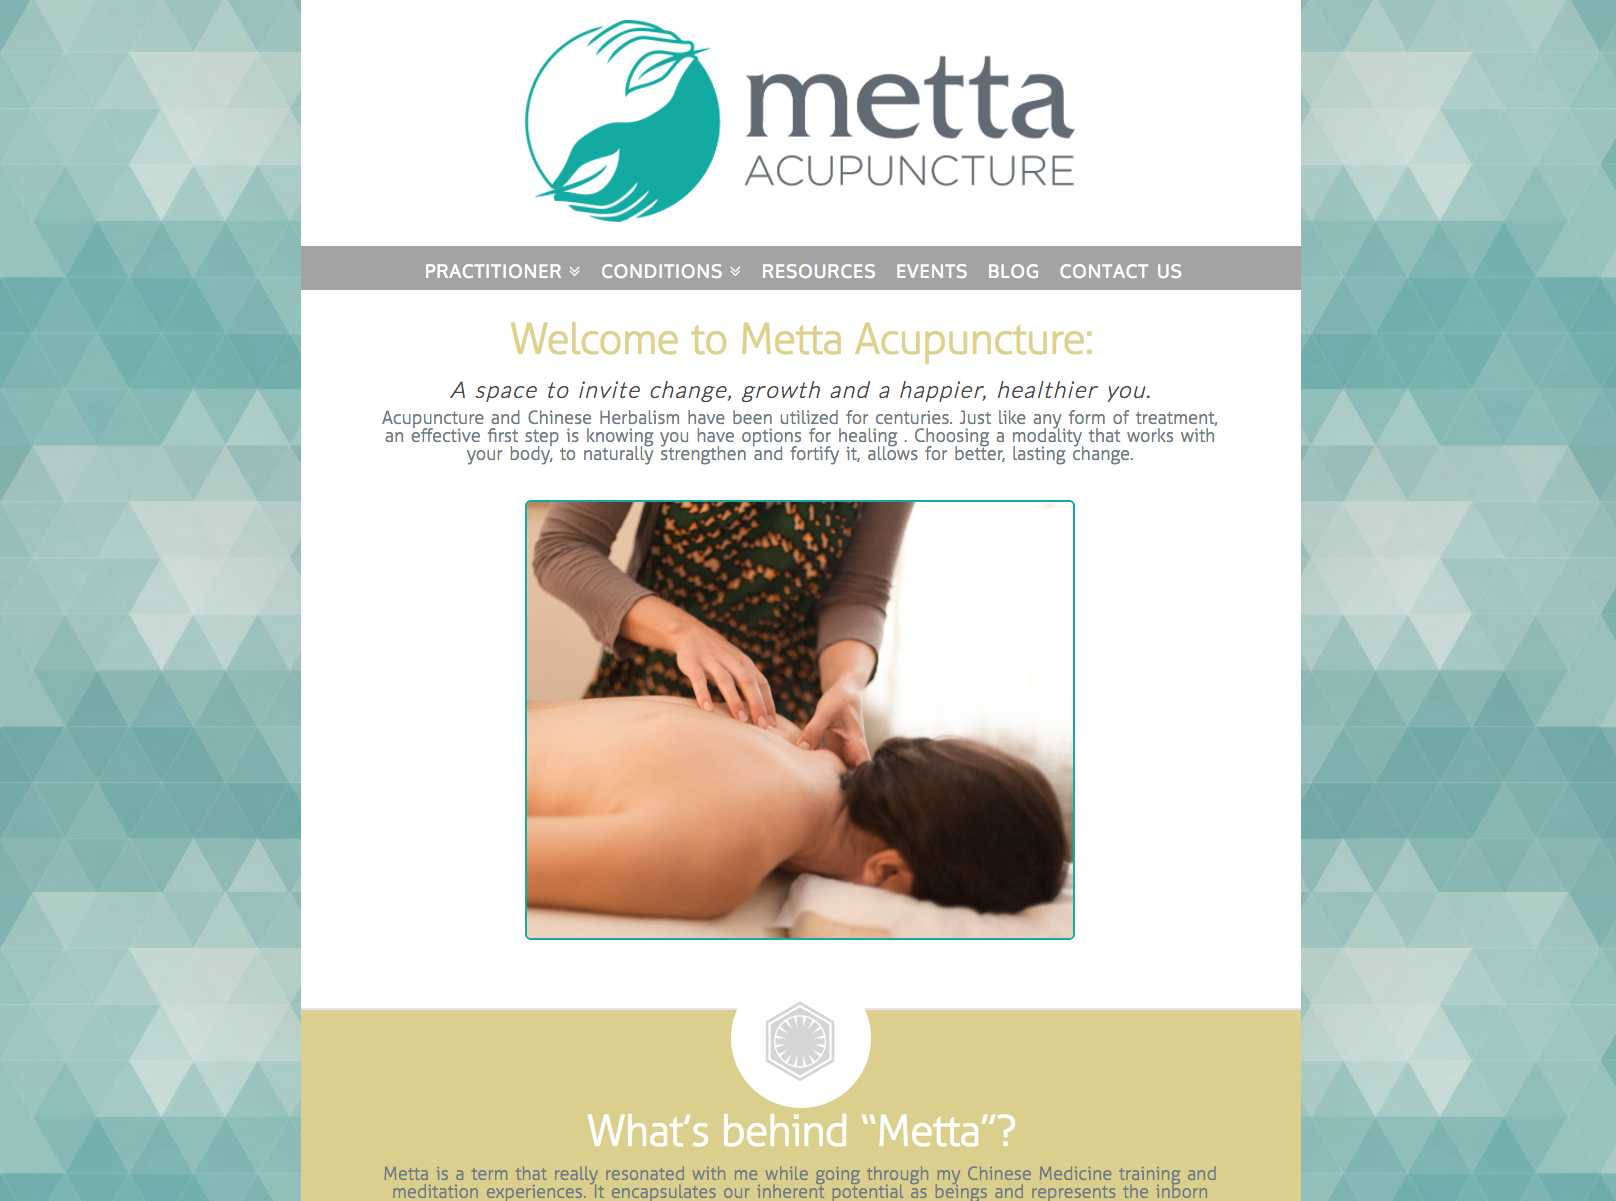 Metta-Acupuncture.com